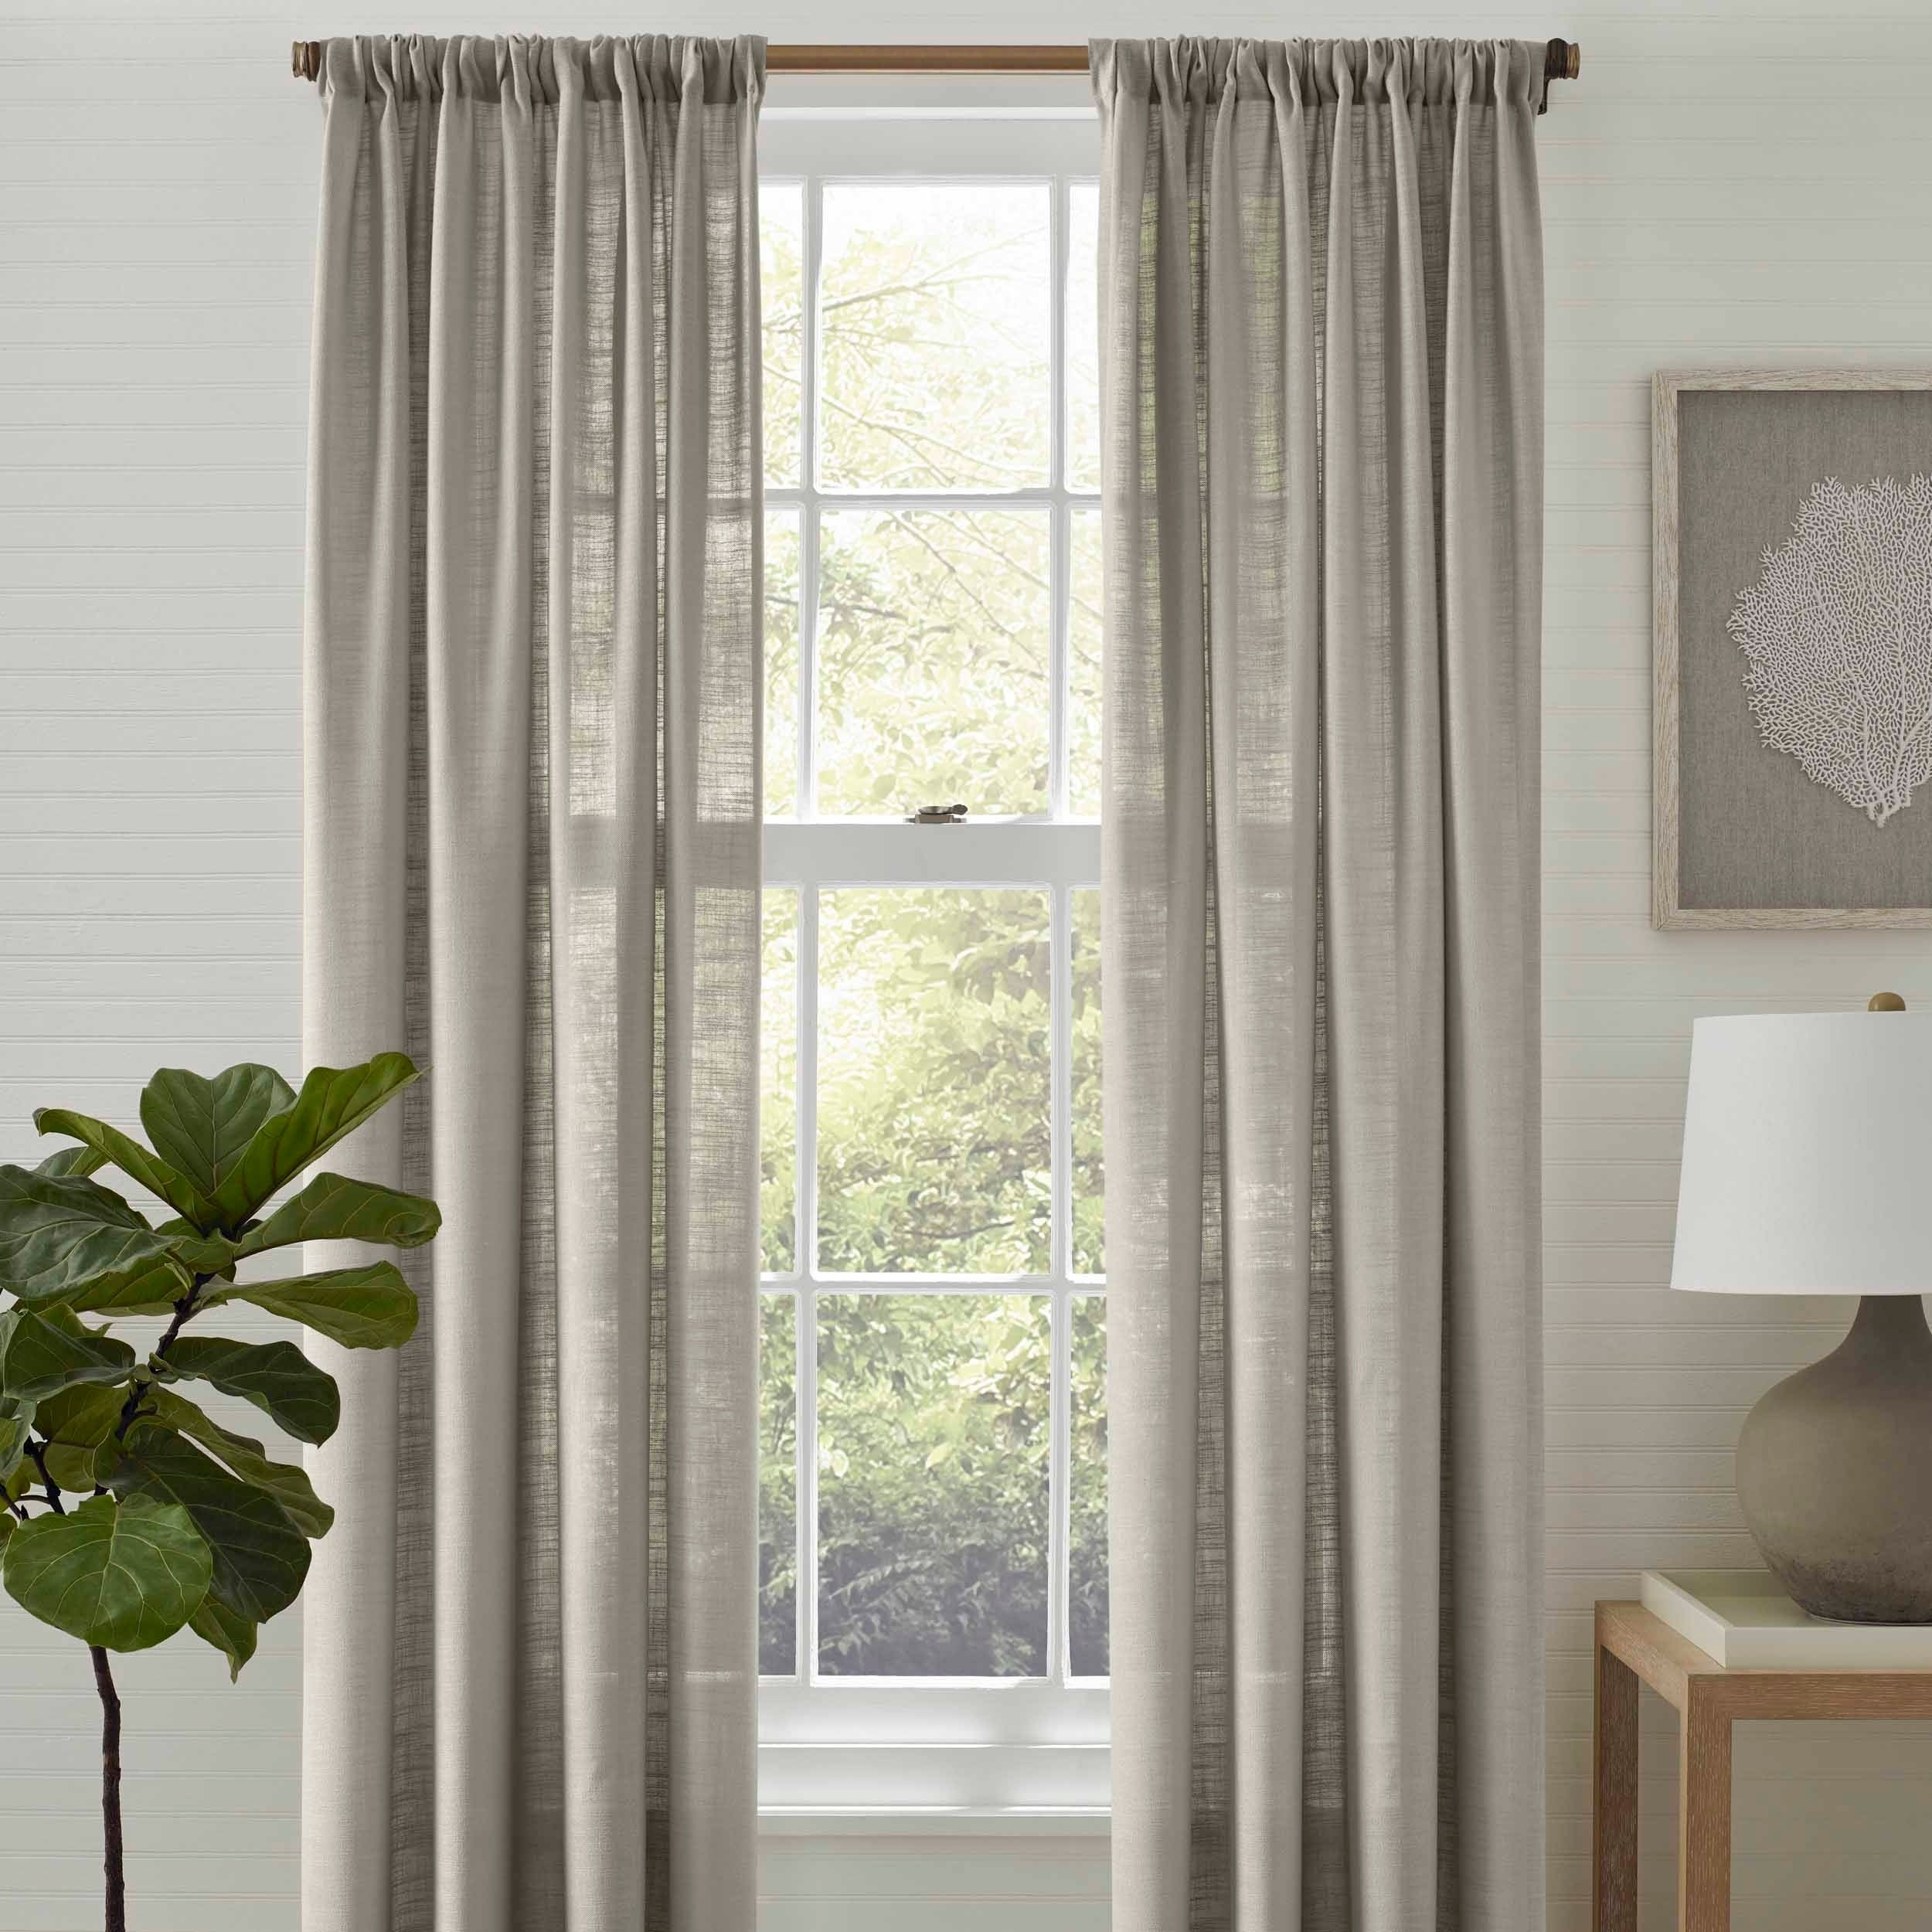 Tommy Bahama Linen Breeze Grey Pole Top Panel Pair – 72x84 In The Gray Barn Kind Koala Curtain Panel Pairs (View 6 of 30)